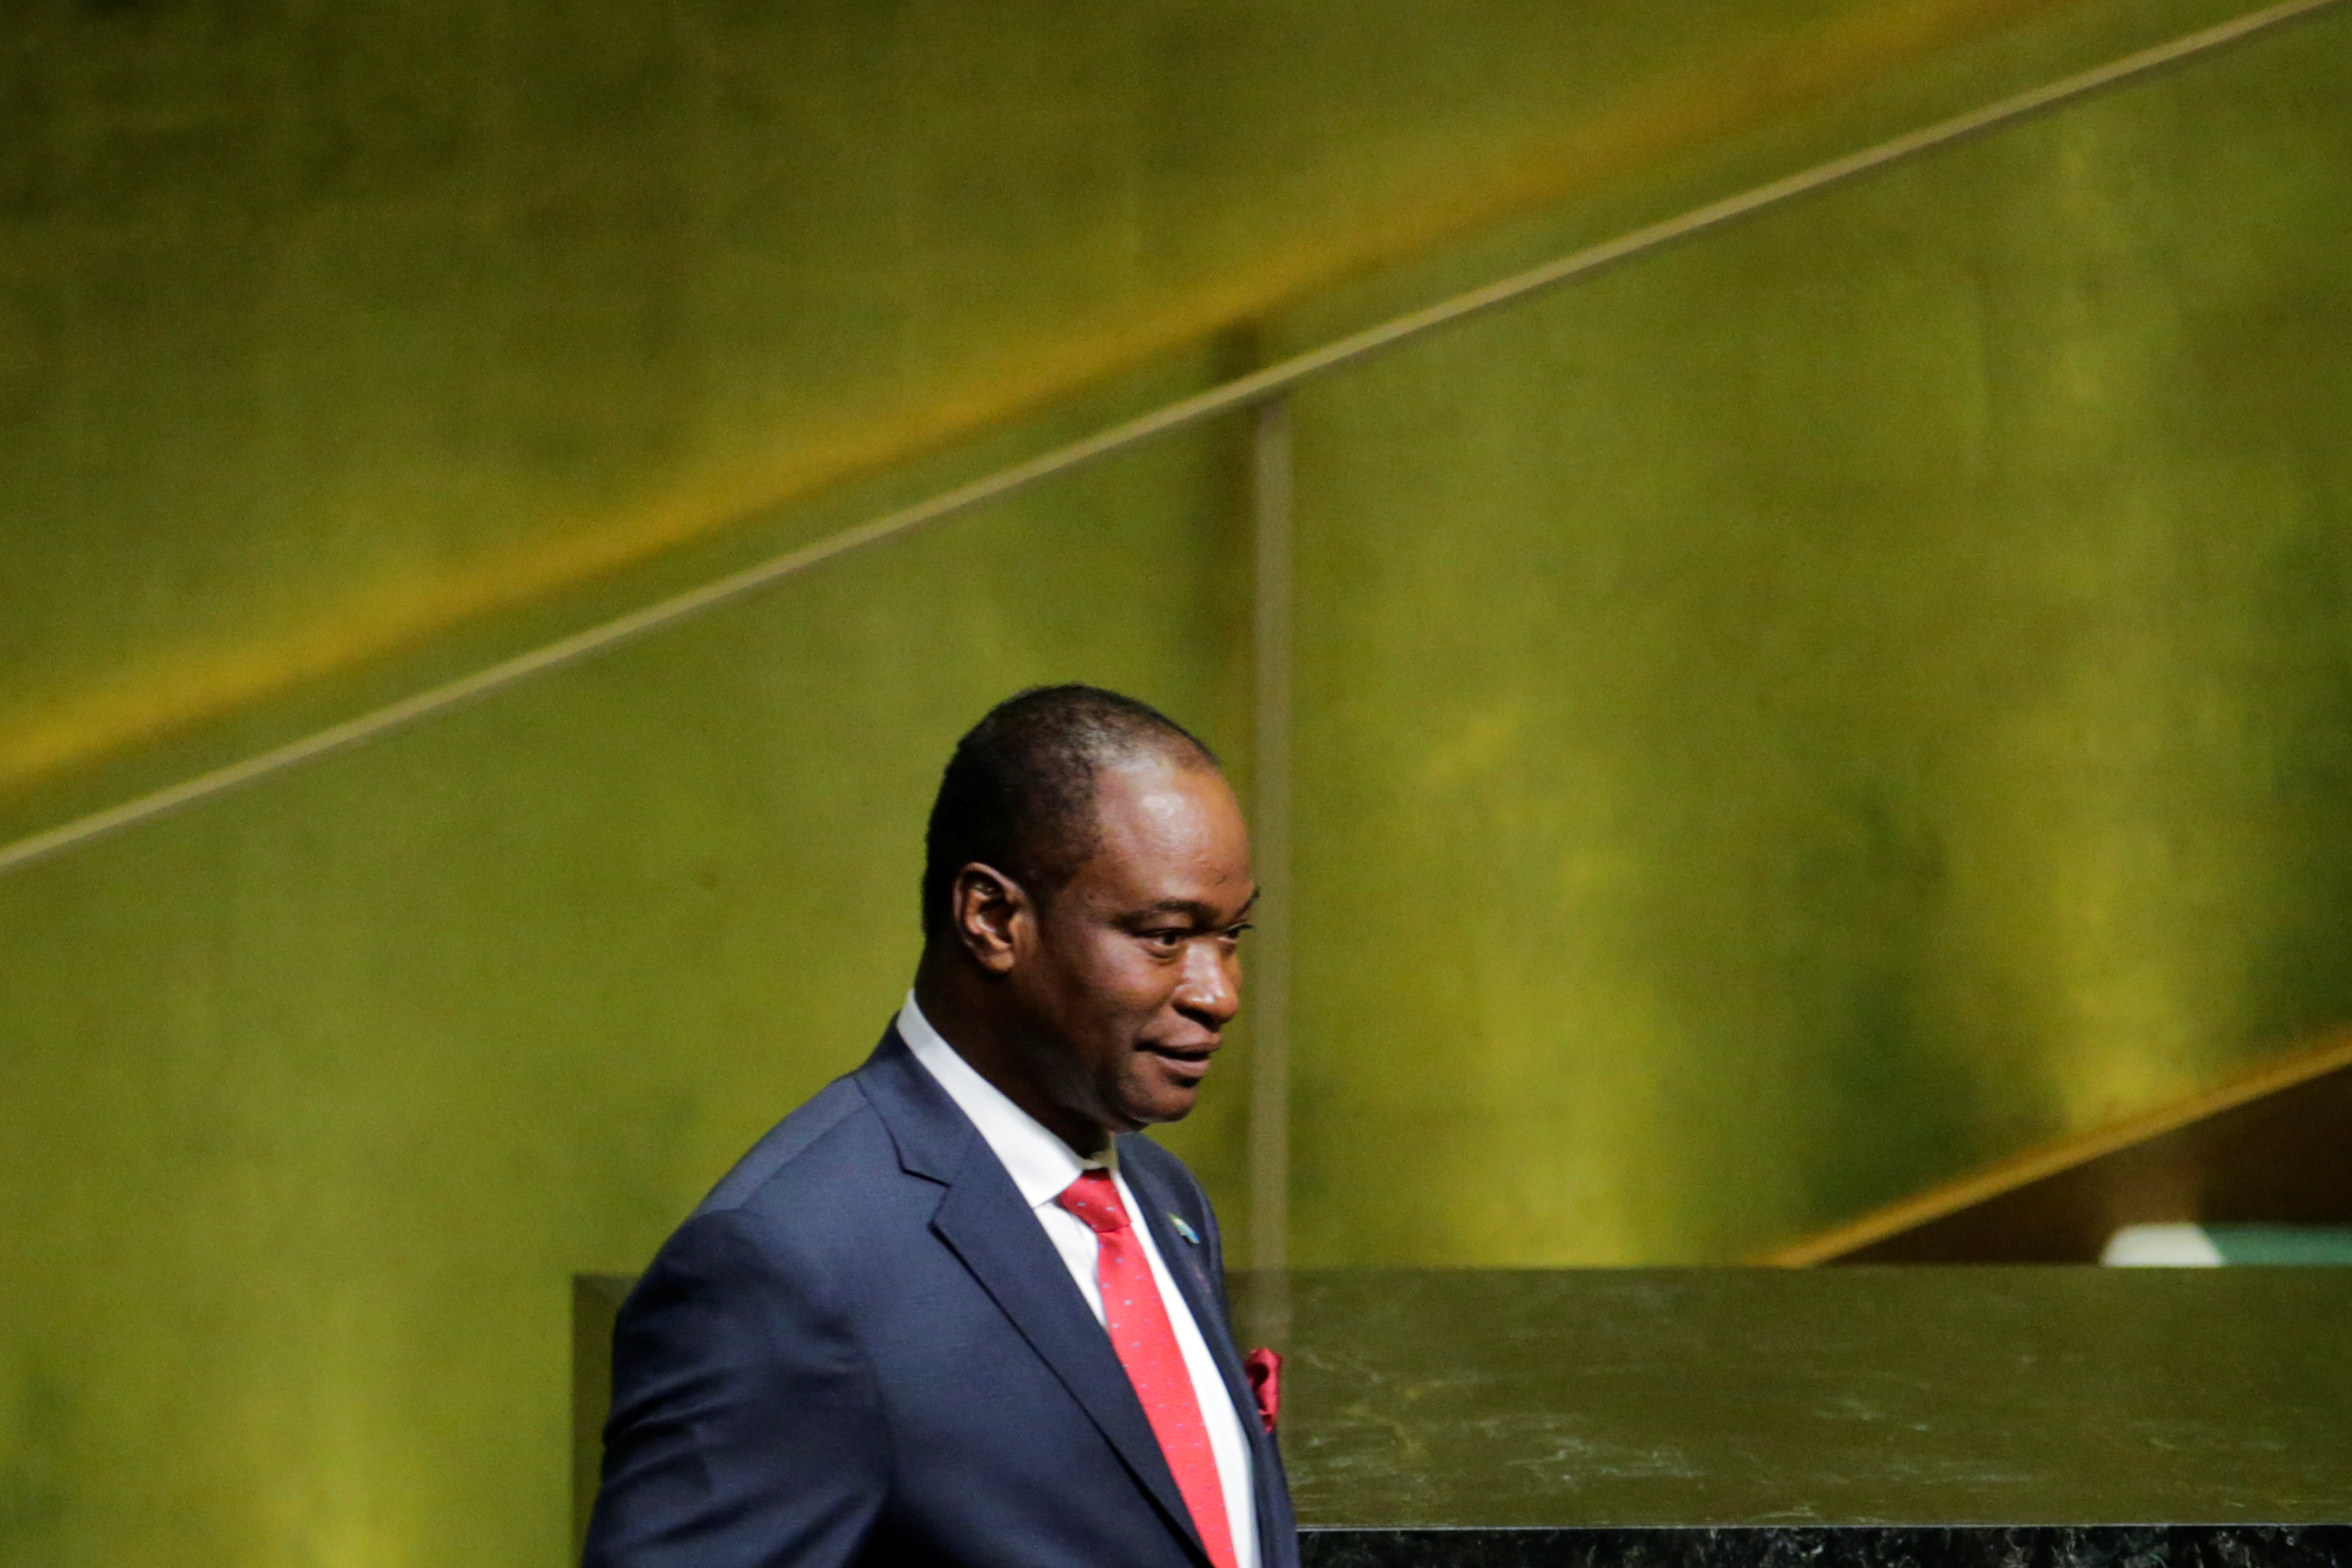 Foreign Minister of Sierra Leone, Samura Kamara, arrives to address the 72nd United Nations General Assembly at U.N. headquarters in New York, U.S., September 22, 2017.